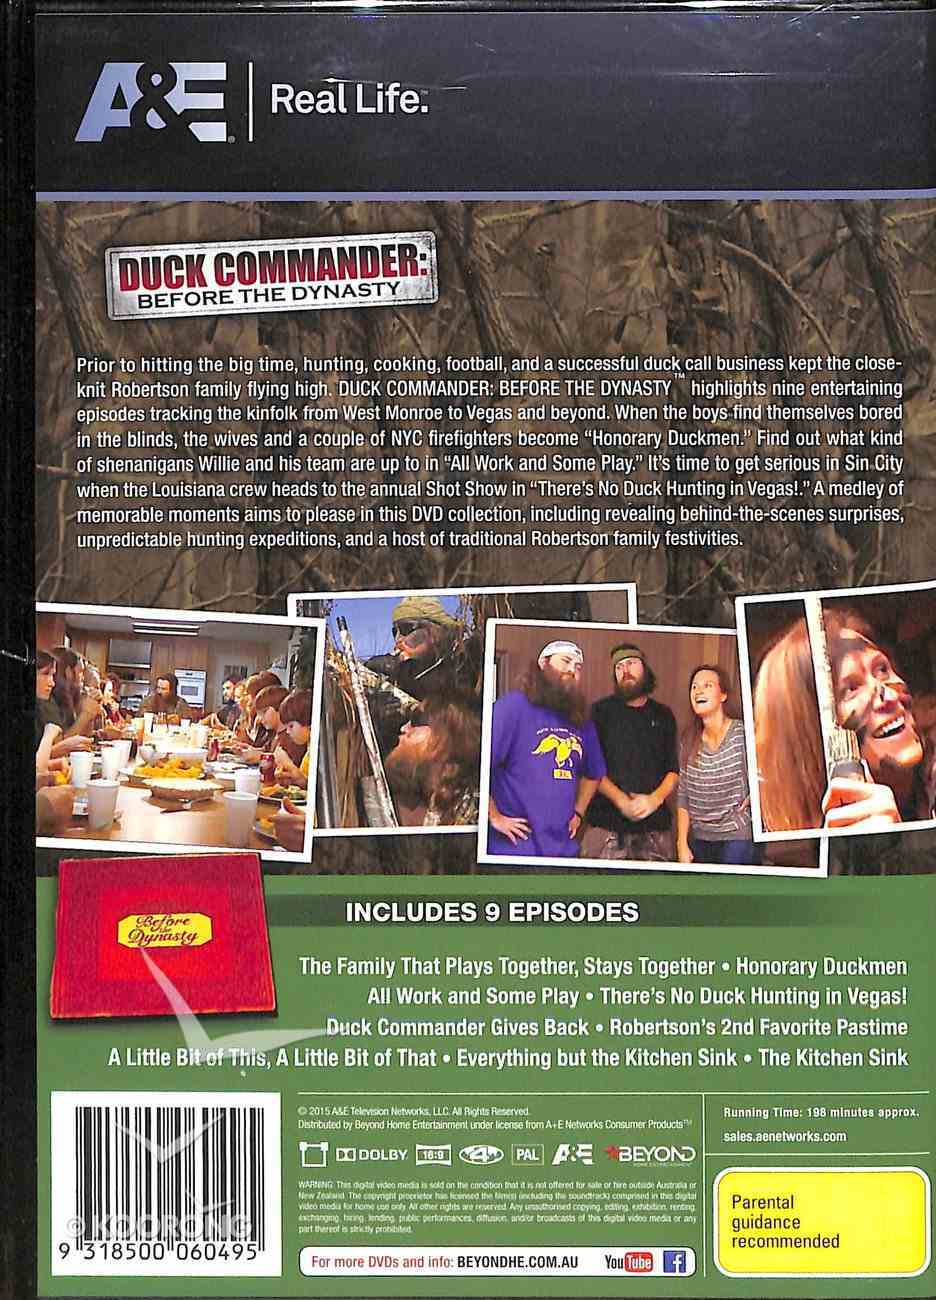 Duck Commander: Before the Dynasty (2 Dvd Set) DVD